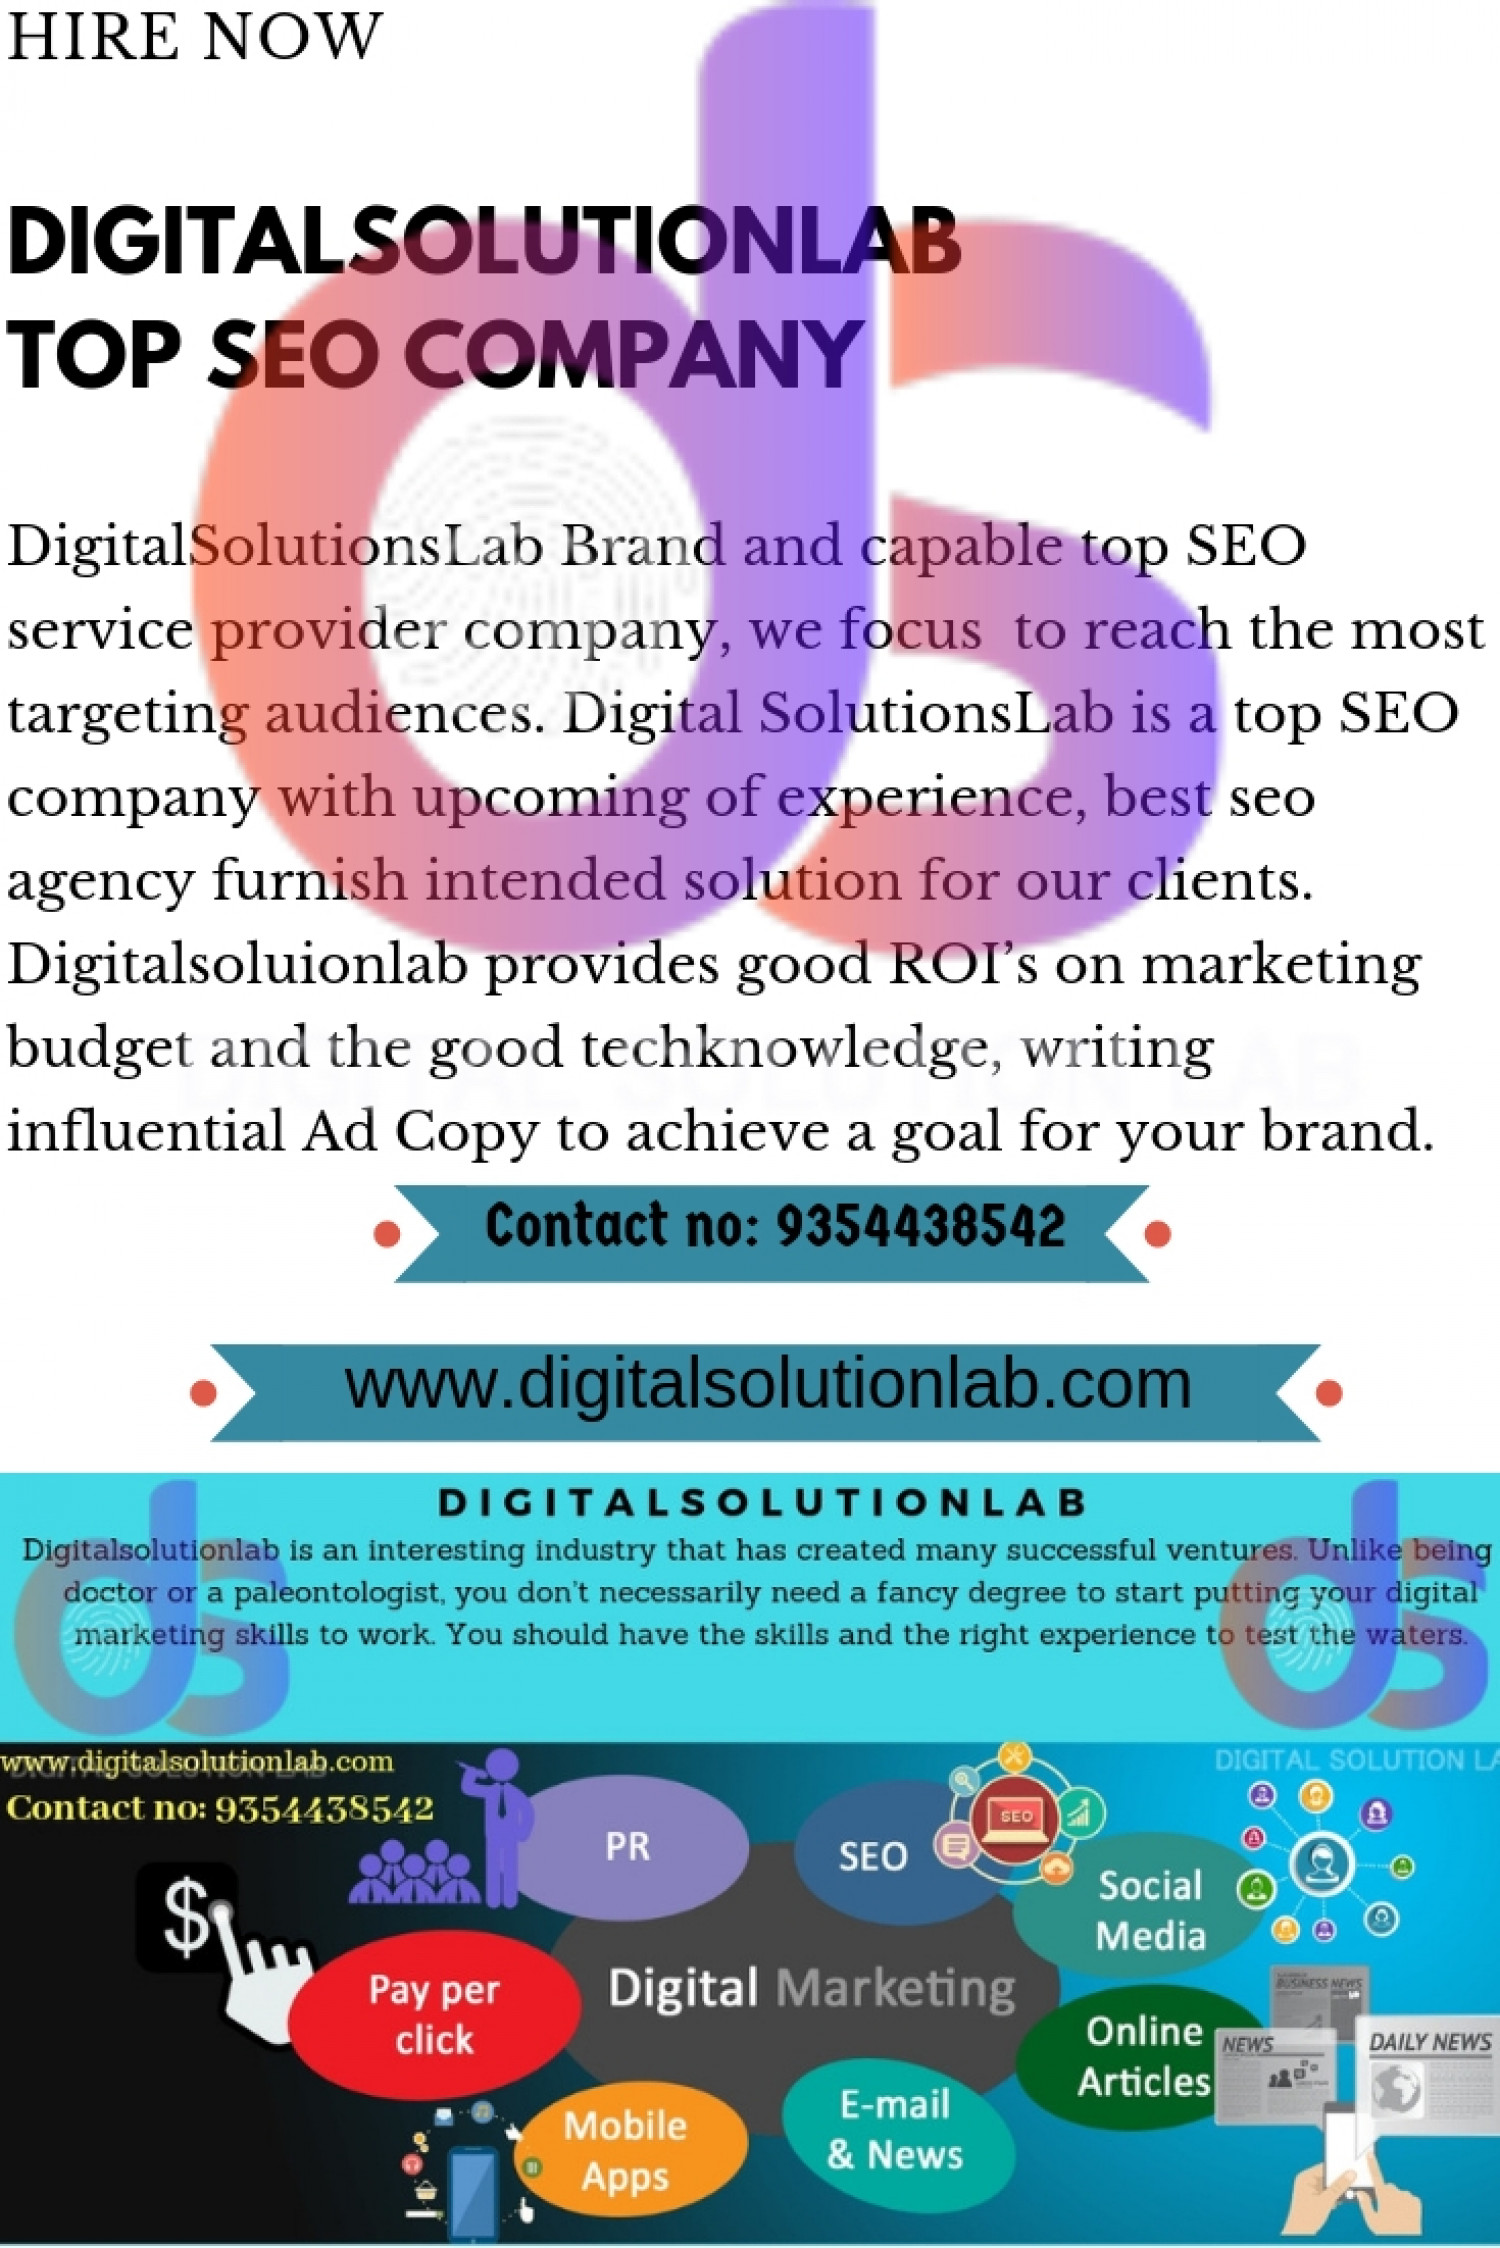 Improve Your ROI choose Digital Solutions Lab for social media marketing services Infographic